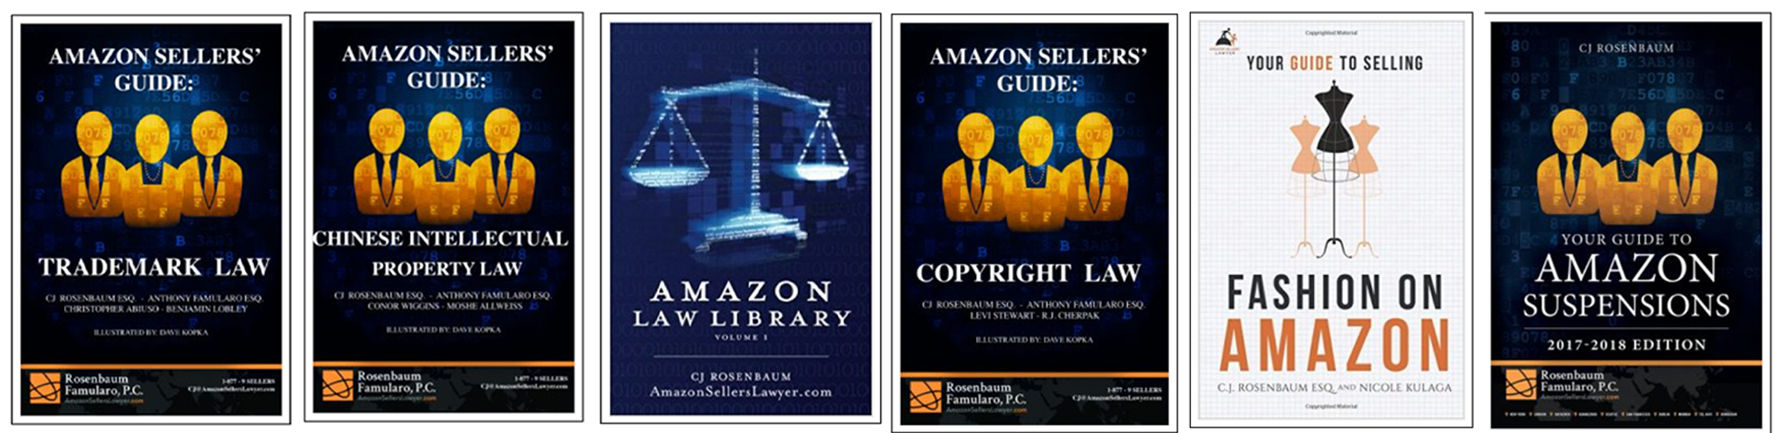 BOOKS for AMZ sellers